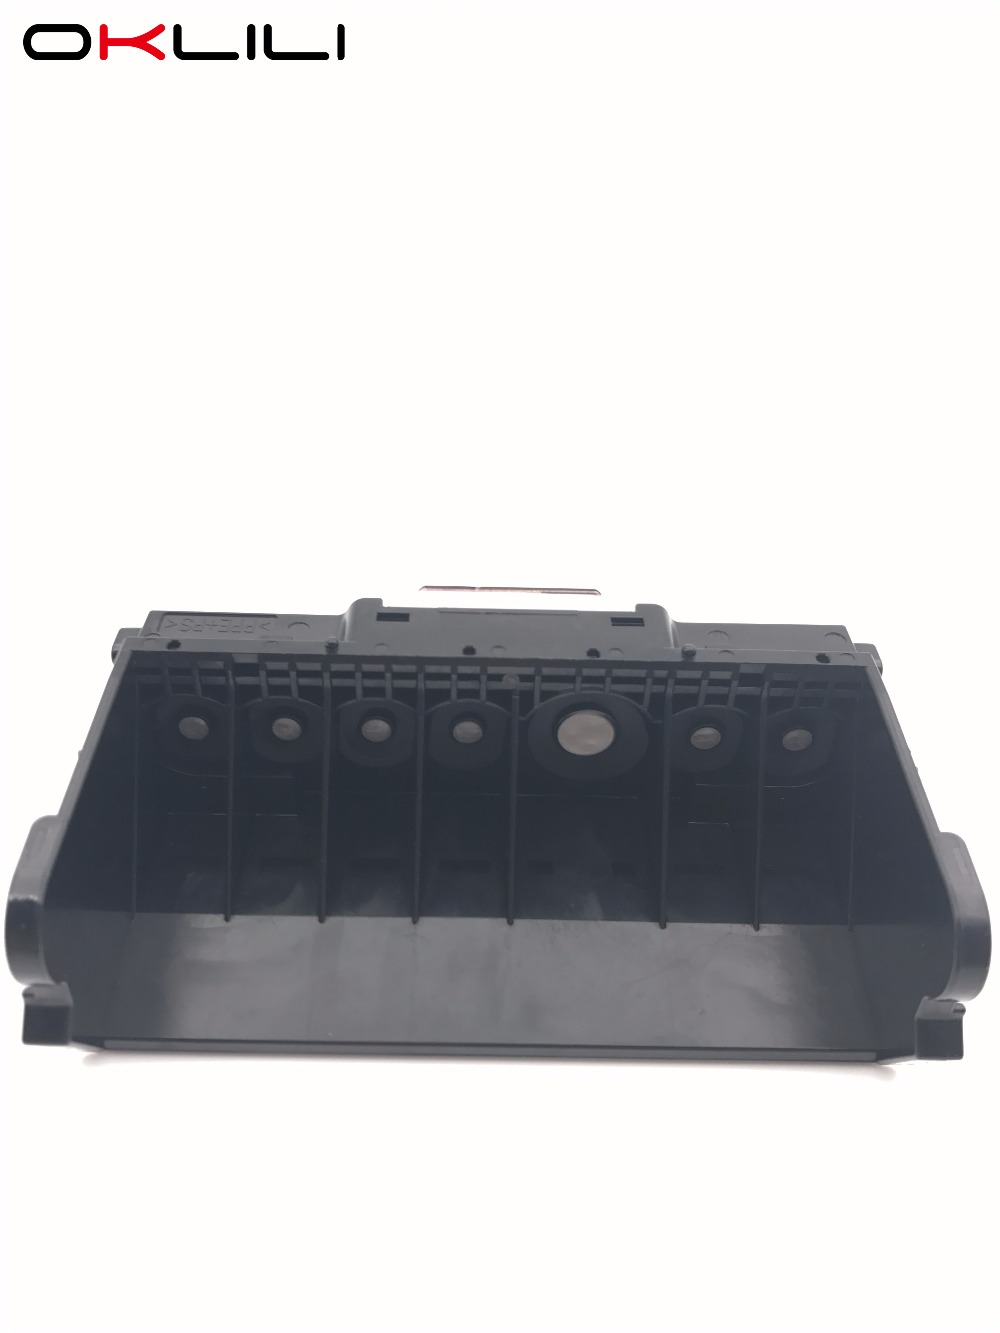 OKLILI ORIGINAL QY6-0062 QY6-0062-000 Printhead Print Head Printer Head for Canon iP7500 iP7600 MP950 MP960 MP970 print head qy6 0062 original refurbished for canon mp960 mp950 ip7500 ip7600 printer only guarantee the print quality of black